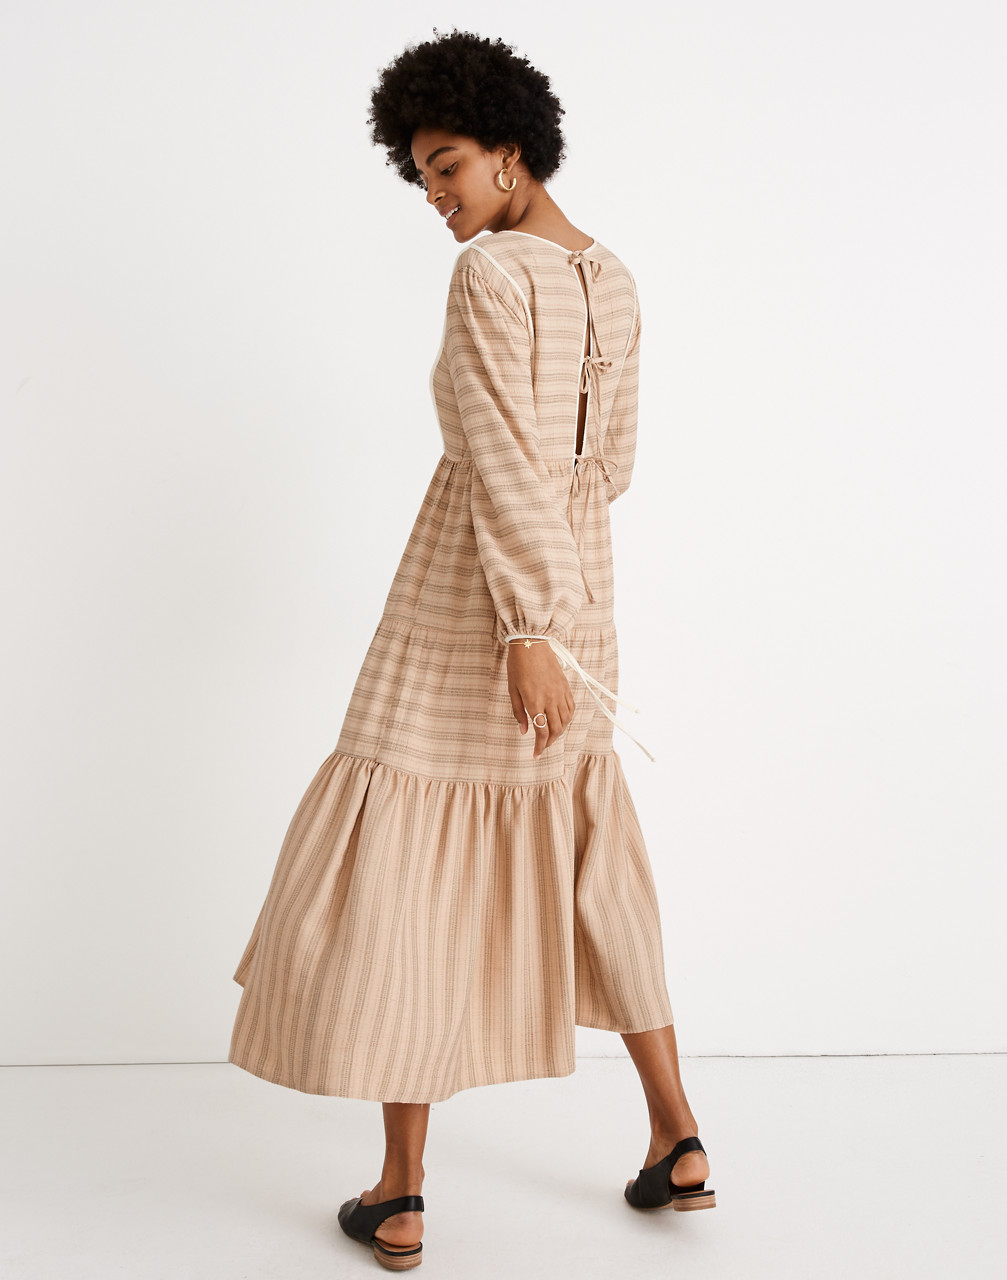 Cottagecore Dresses Aesthetic, Granny, Vintage Madewell x Christy Dawn Striped Tallulah Tie-Back Midi Dress $238.00 AT vintagedancer.com